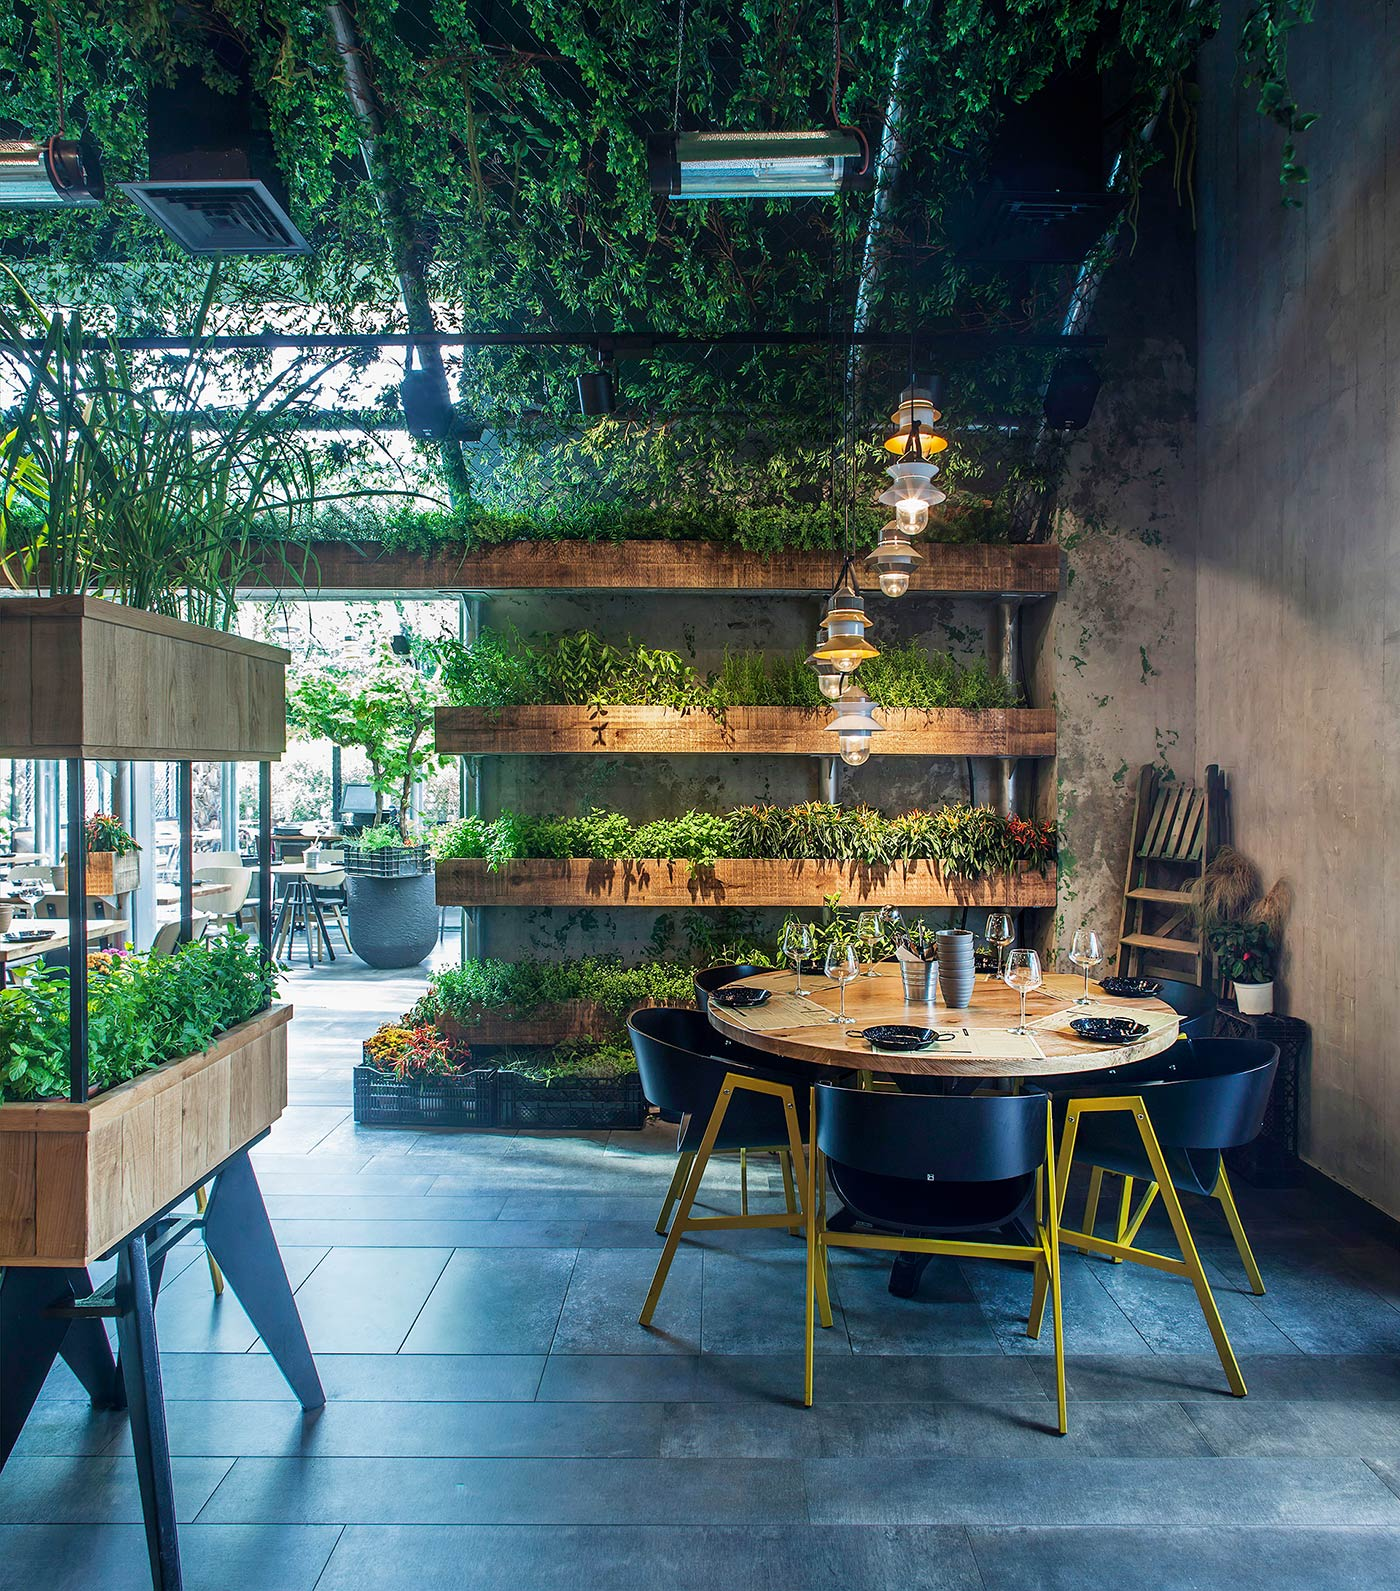 Segev Kitchen Garden Restaurant in Israel